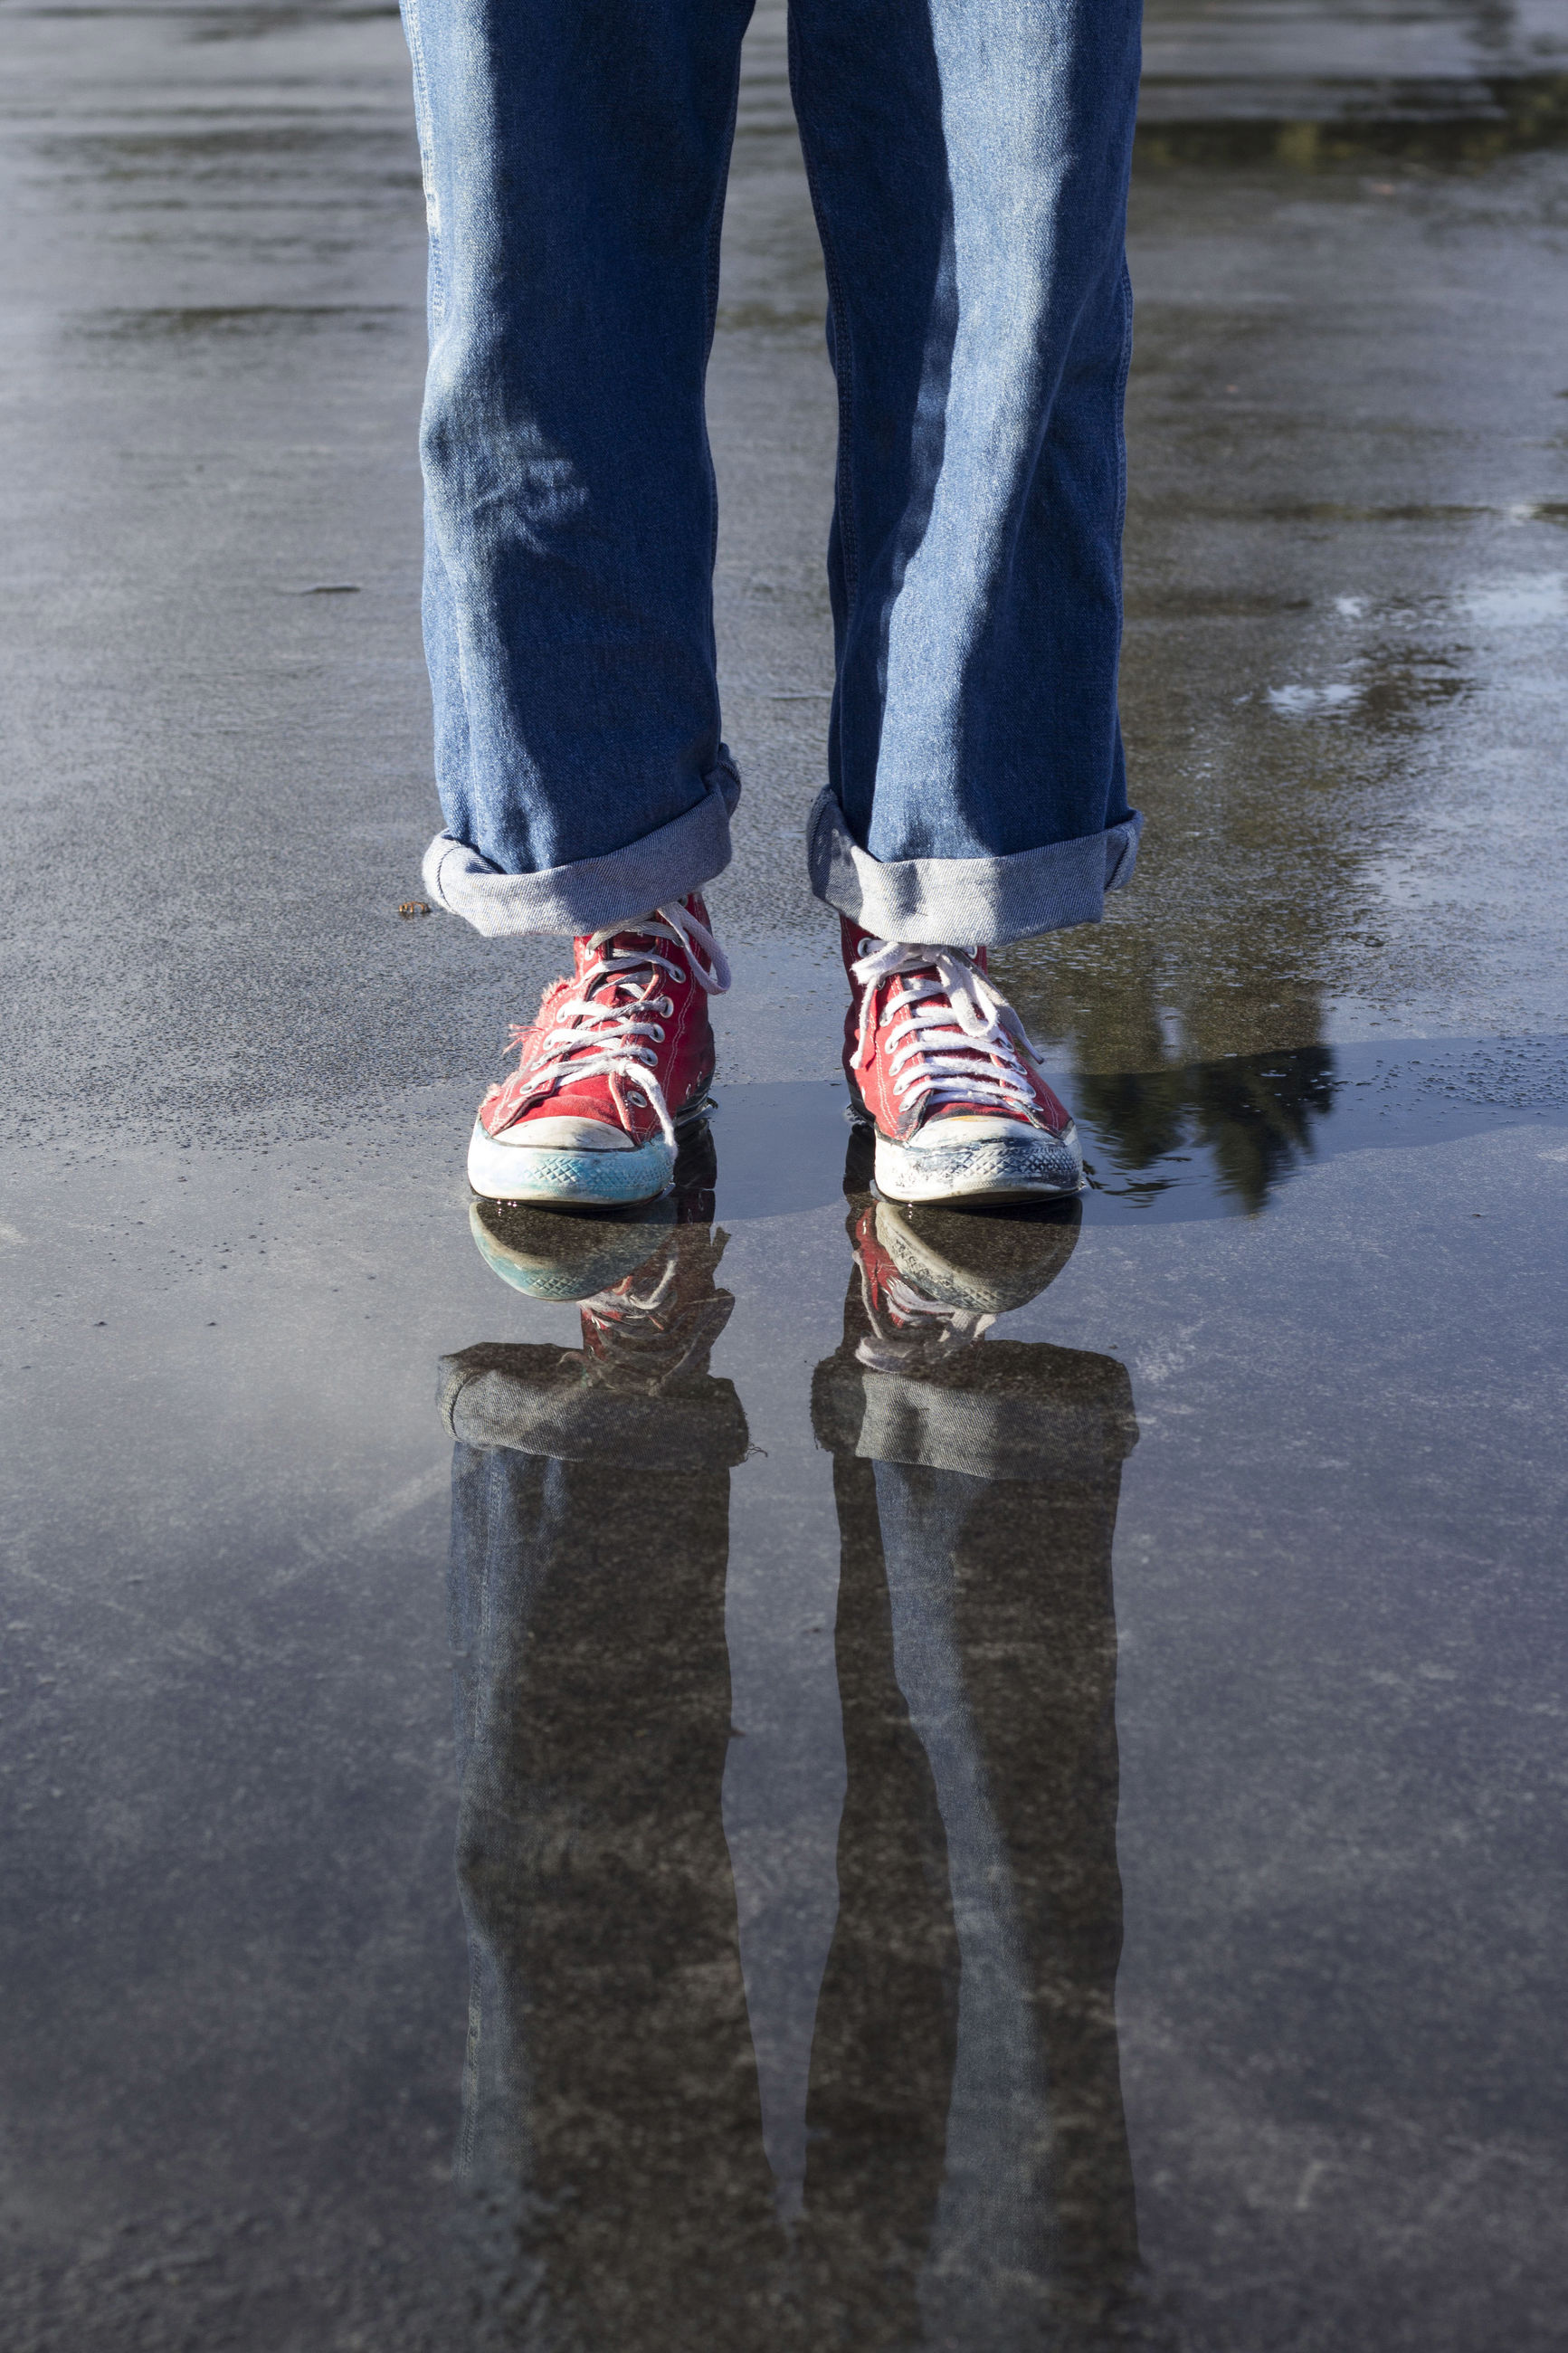 Low section of person standing by reflection on puddle